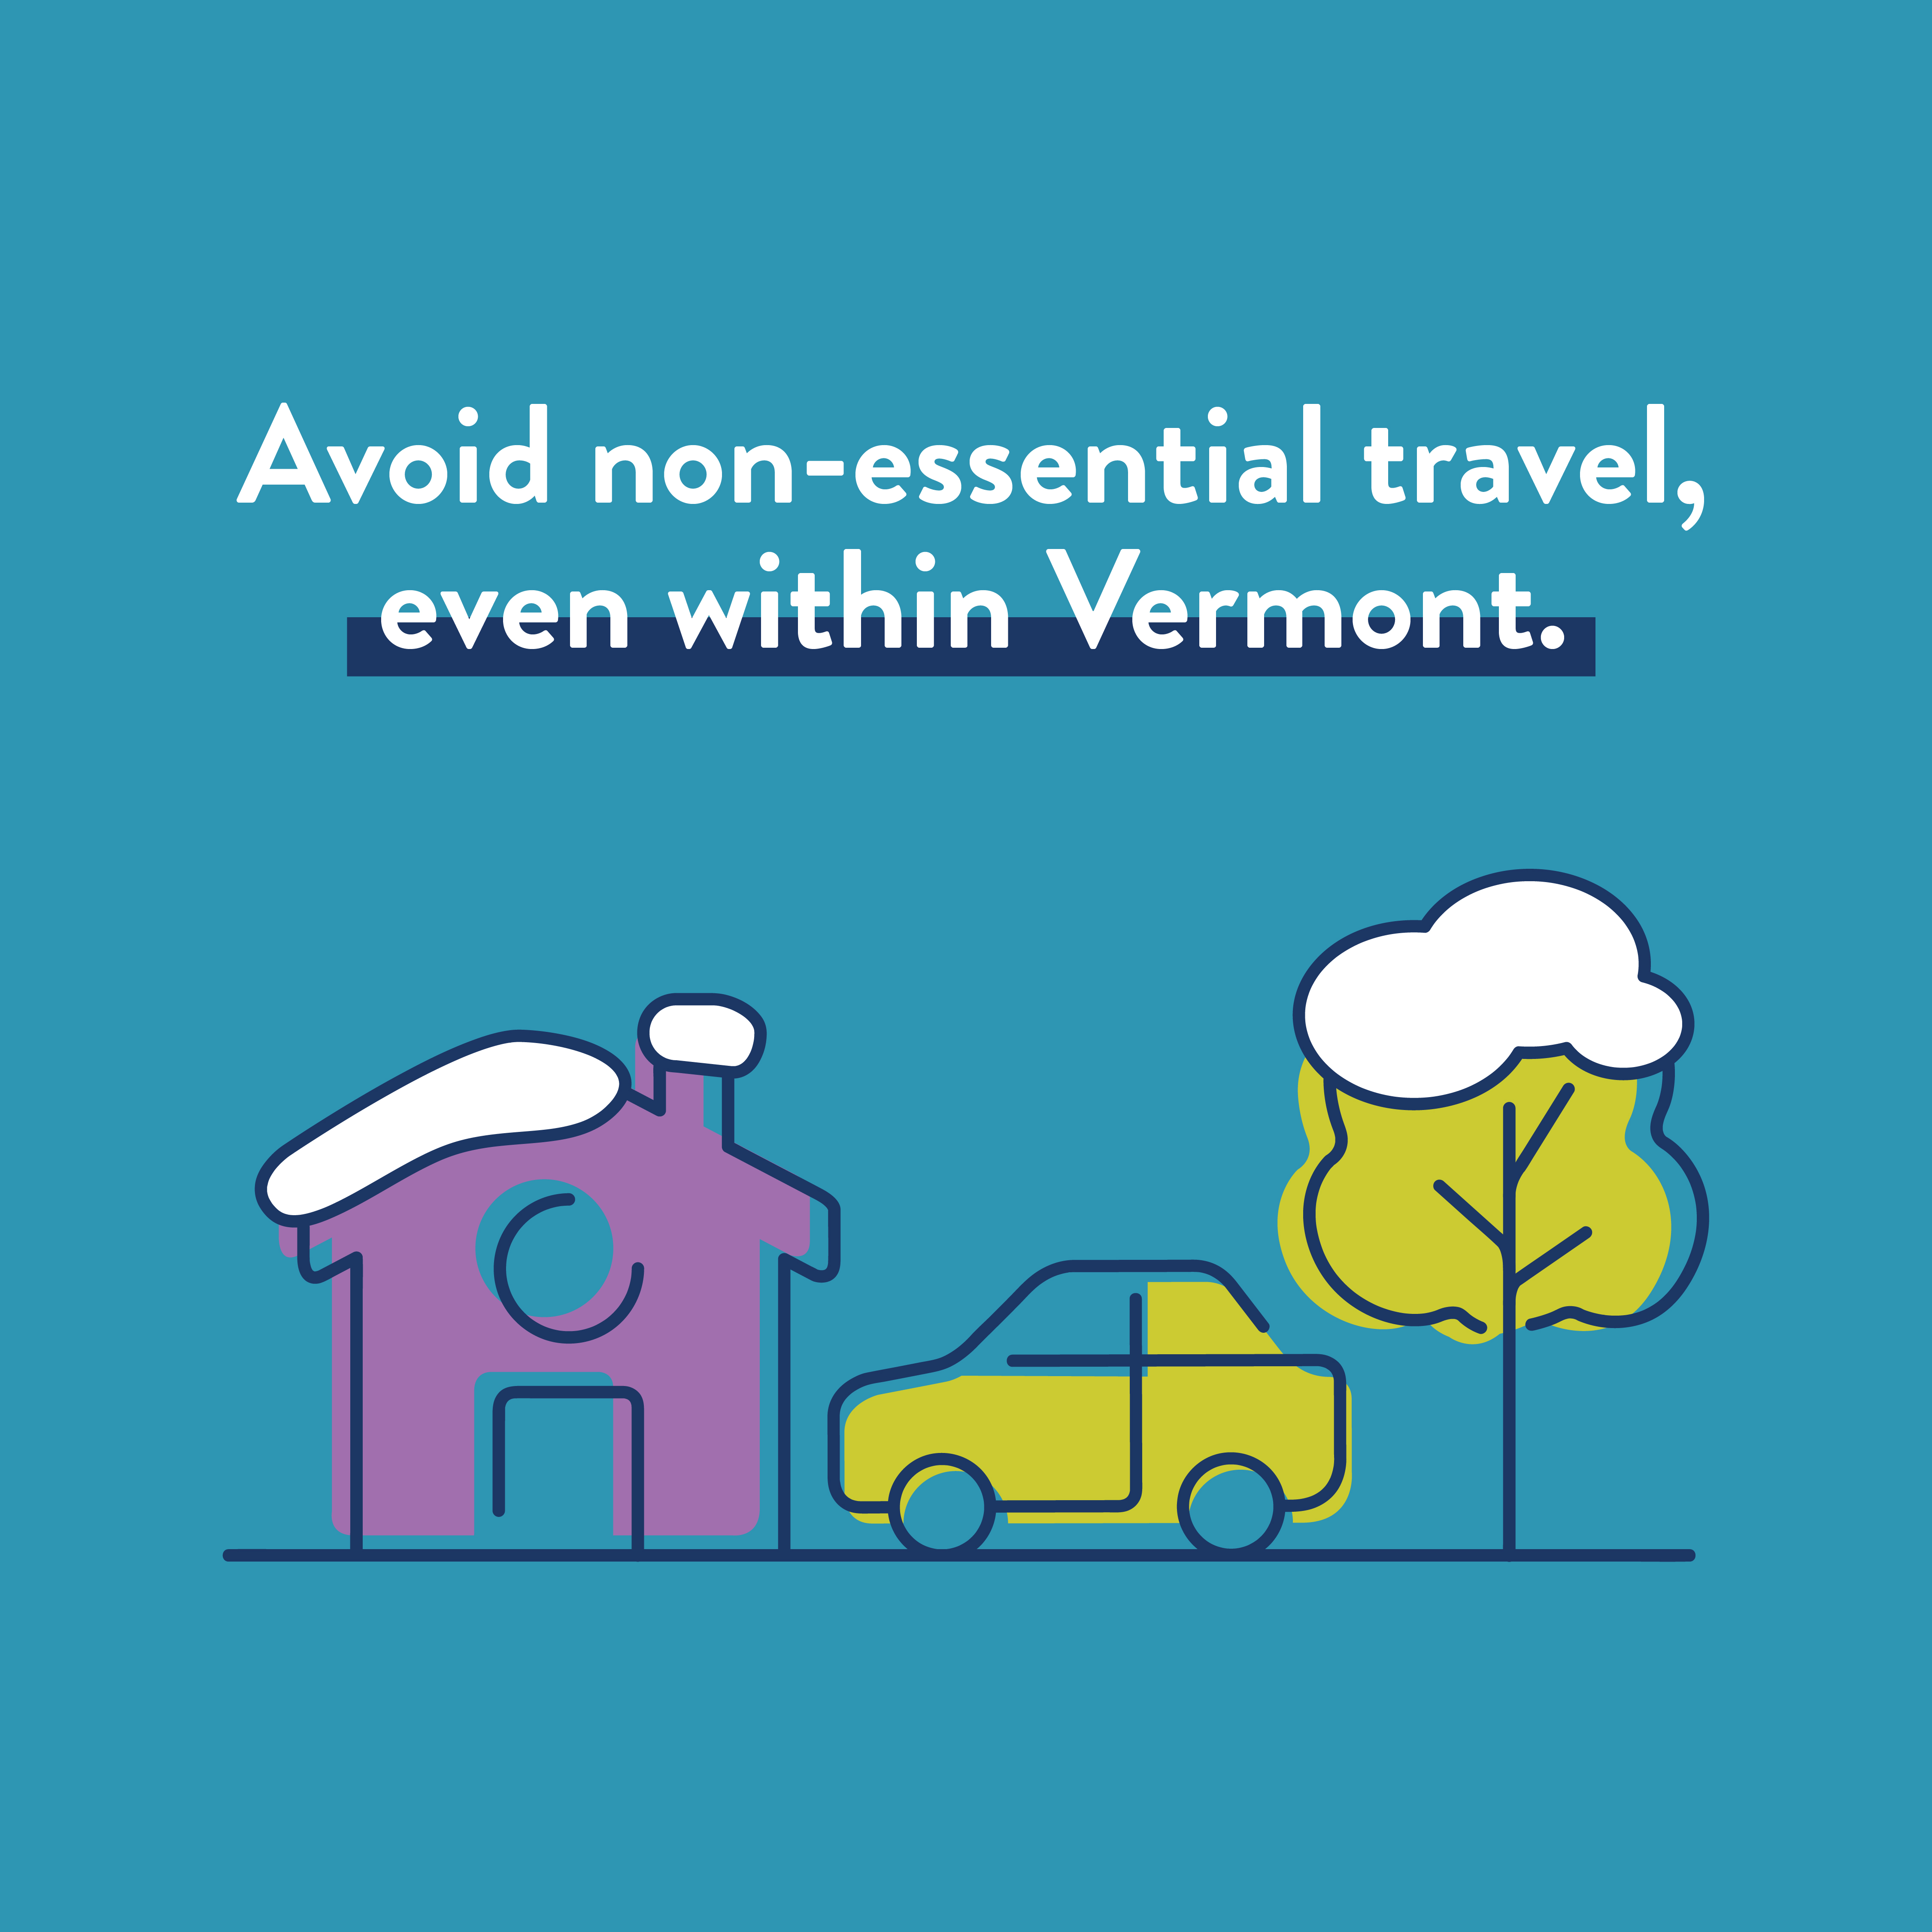 Avoid non-essential travel, even within Vermont.